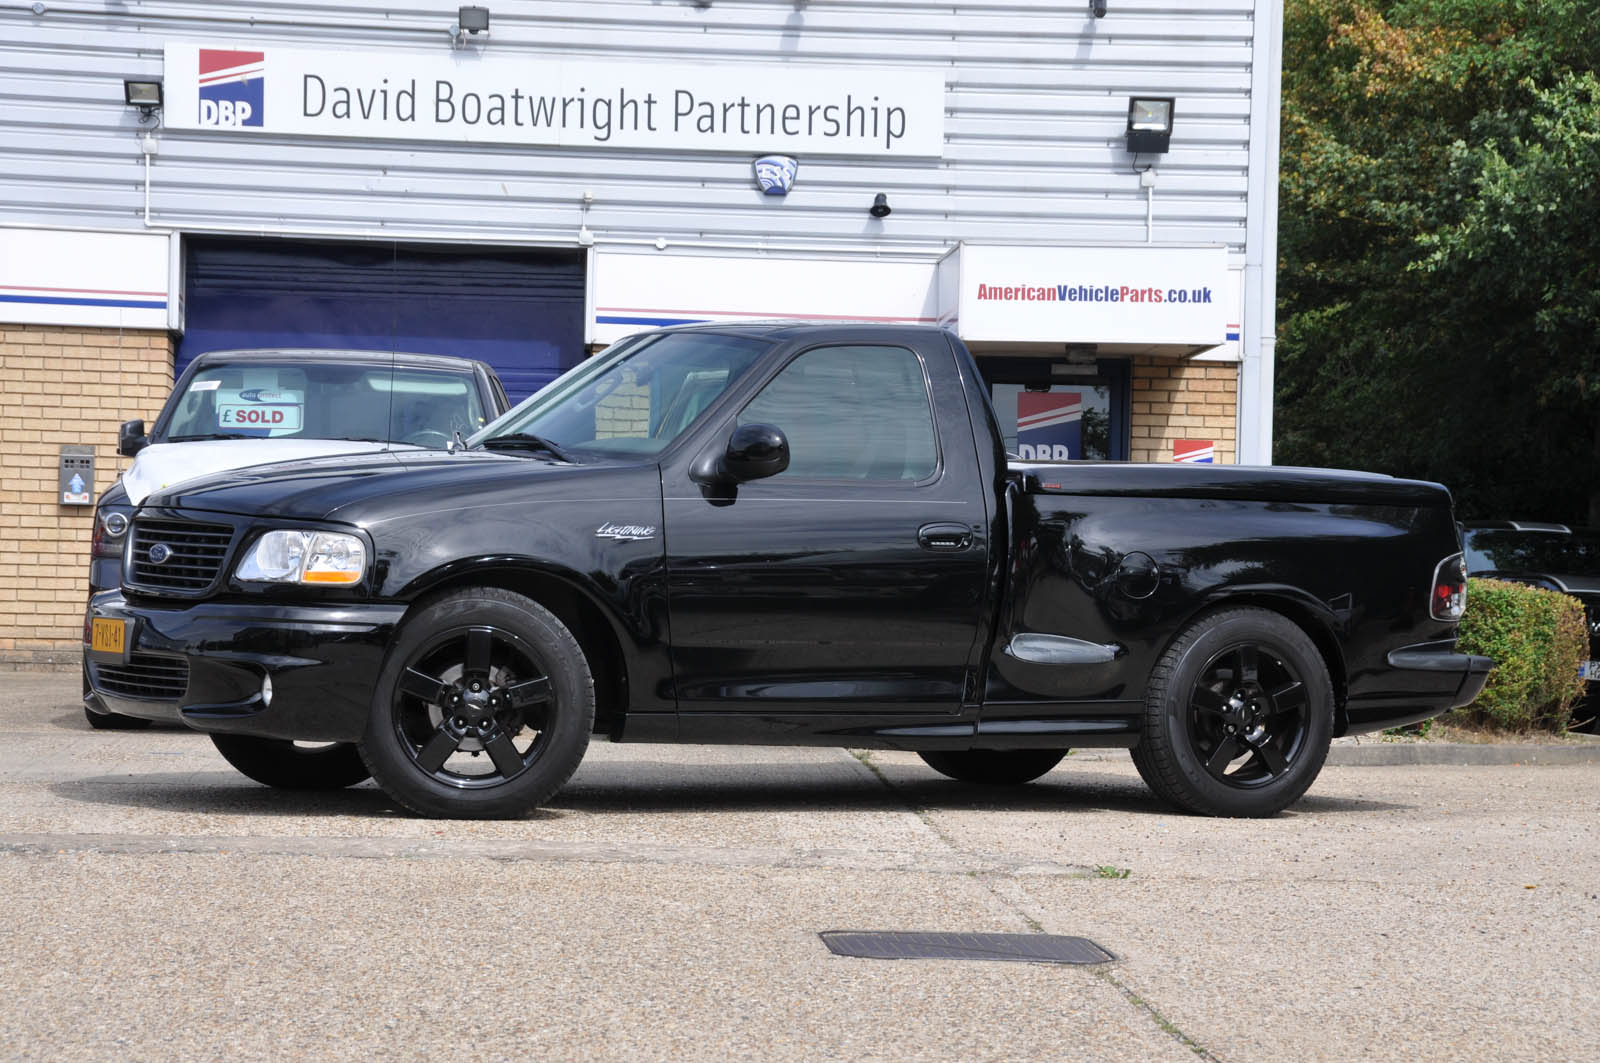 2004 Ford F150 Lightning Svt David Boatwright